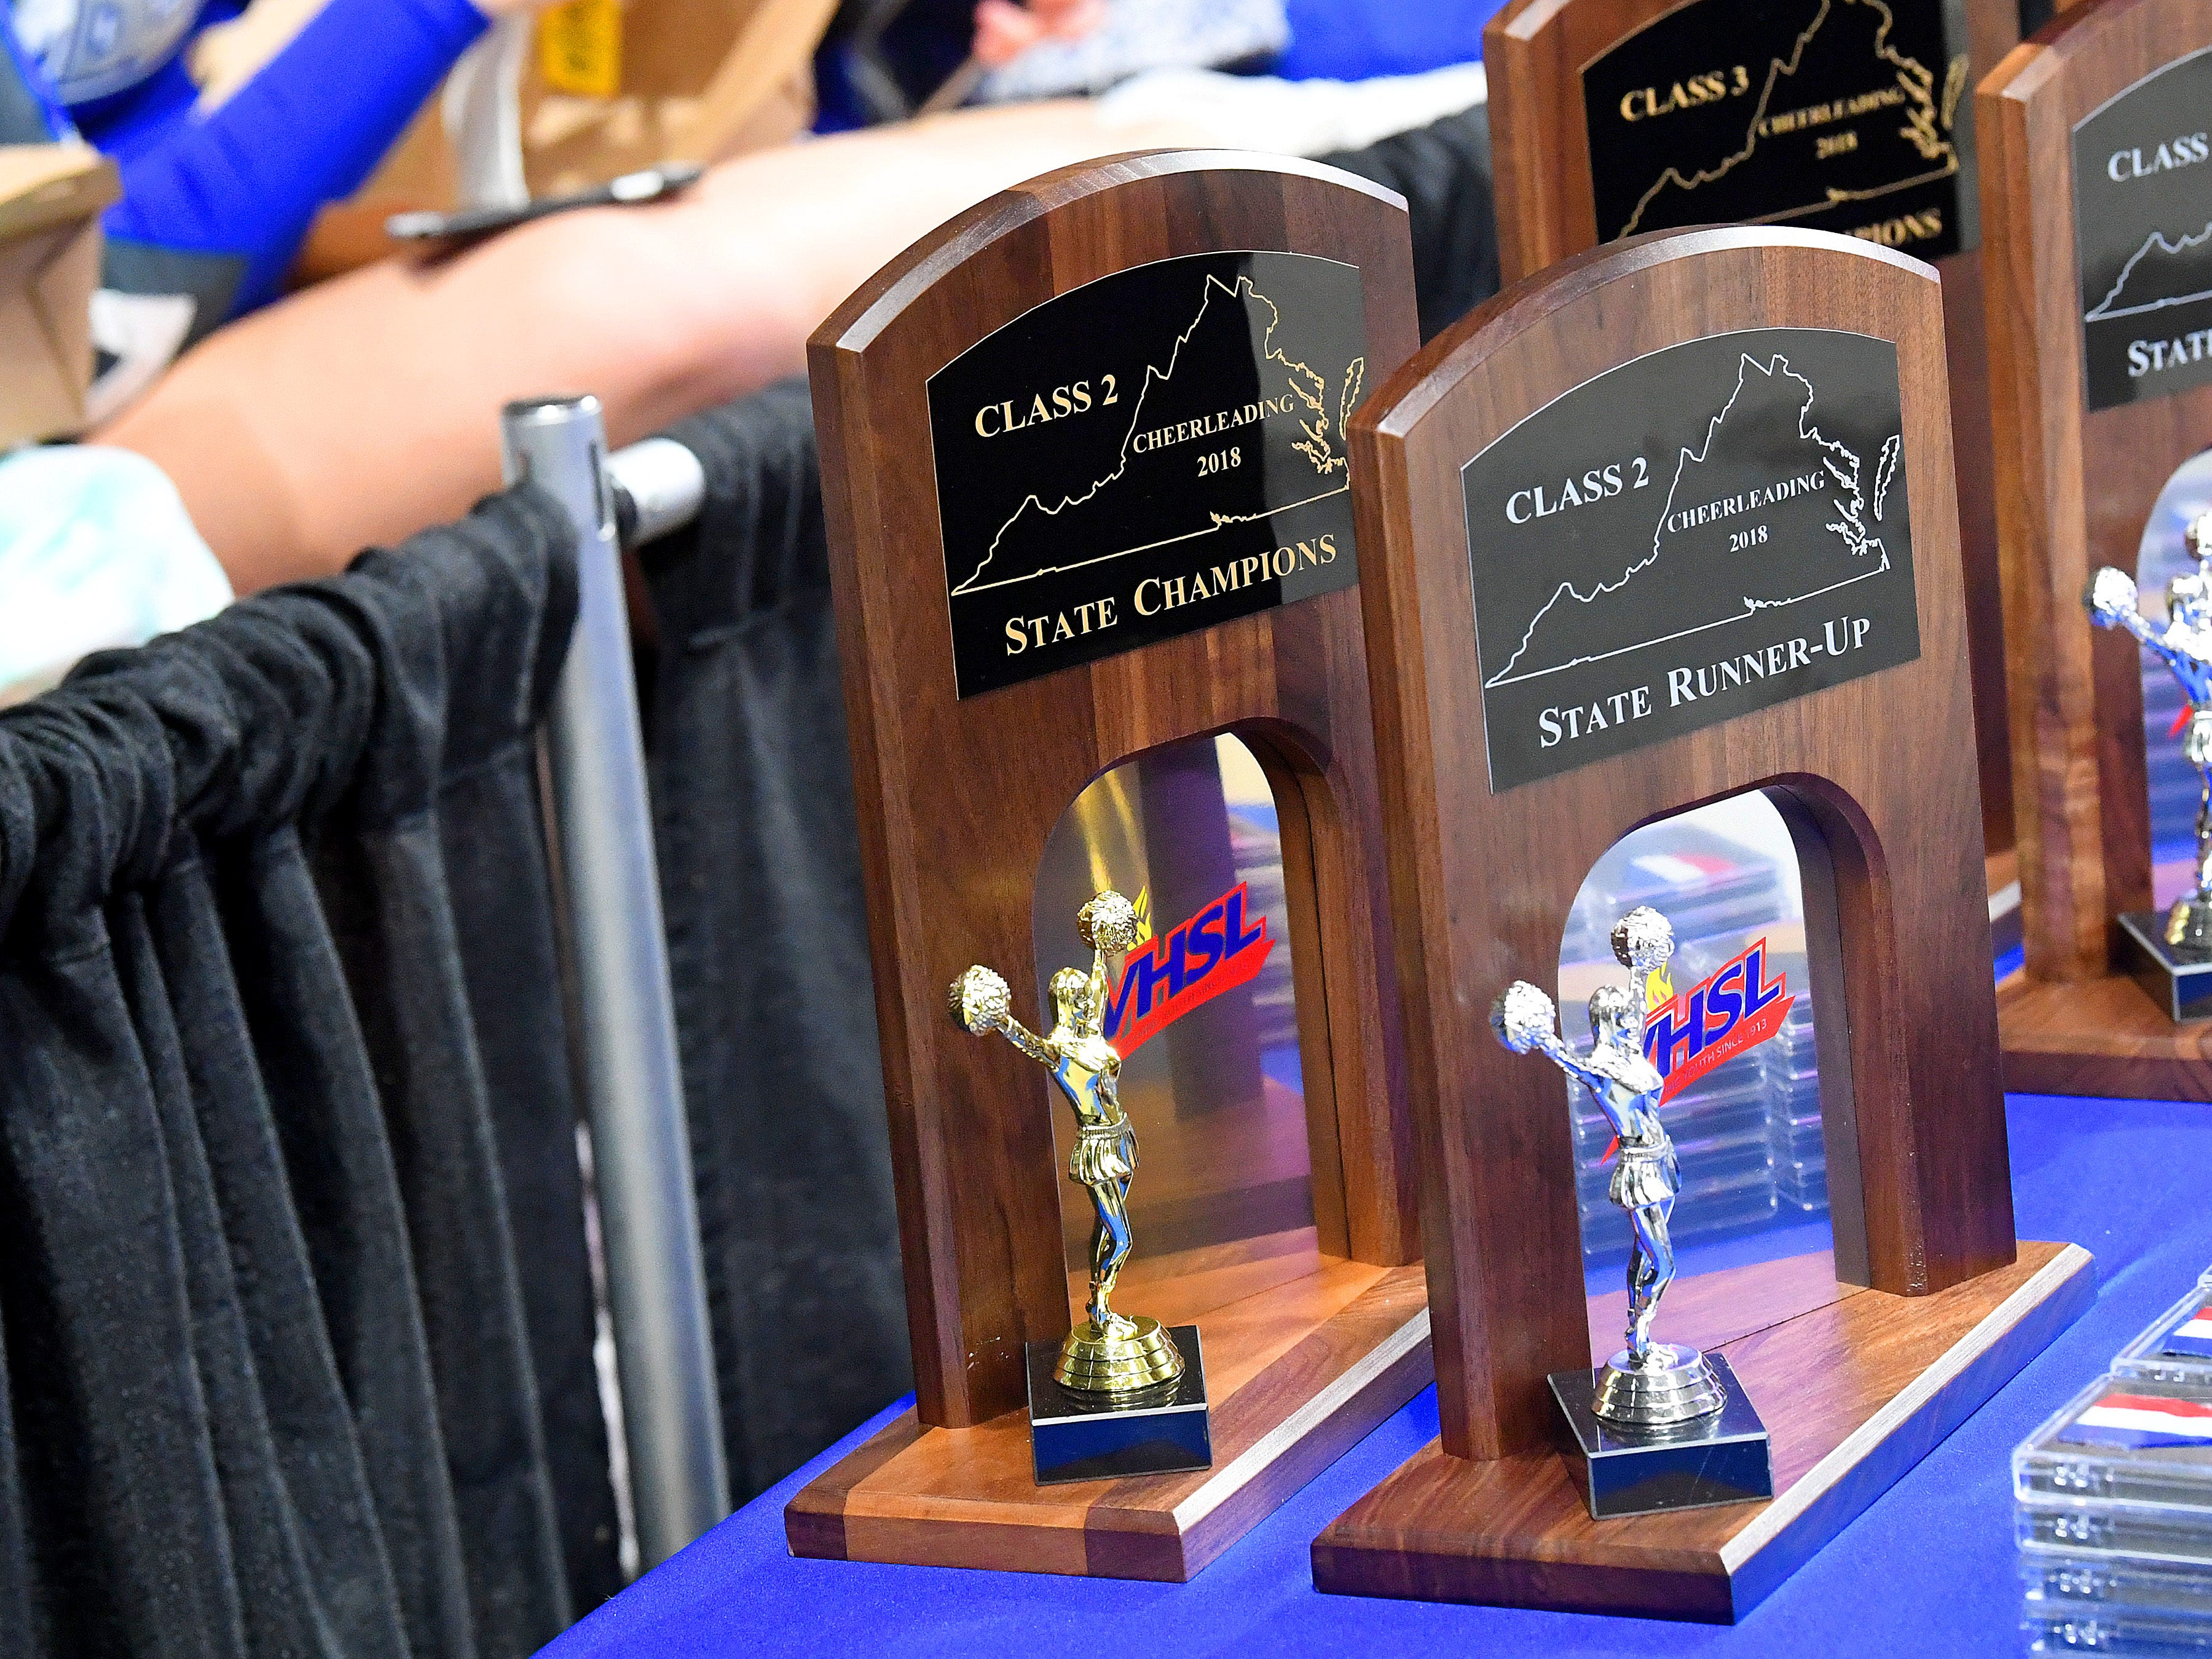 Trophies for the Class 2 state championships and runner-up at the VHSL Competition Cheer Championships in Richmond on Saturday, Nov. 3, 2018.